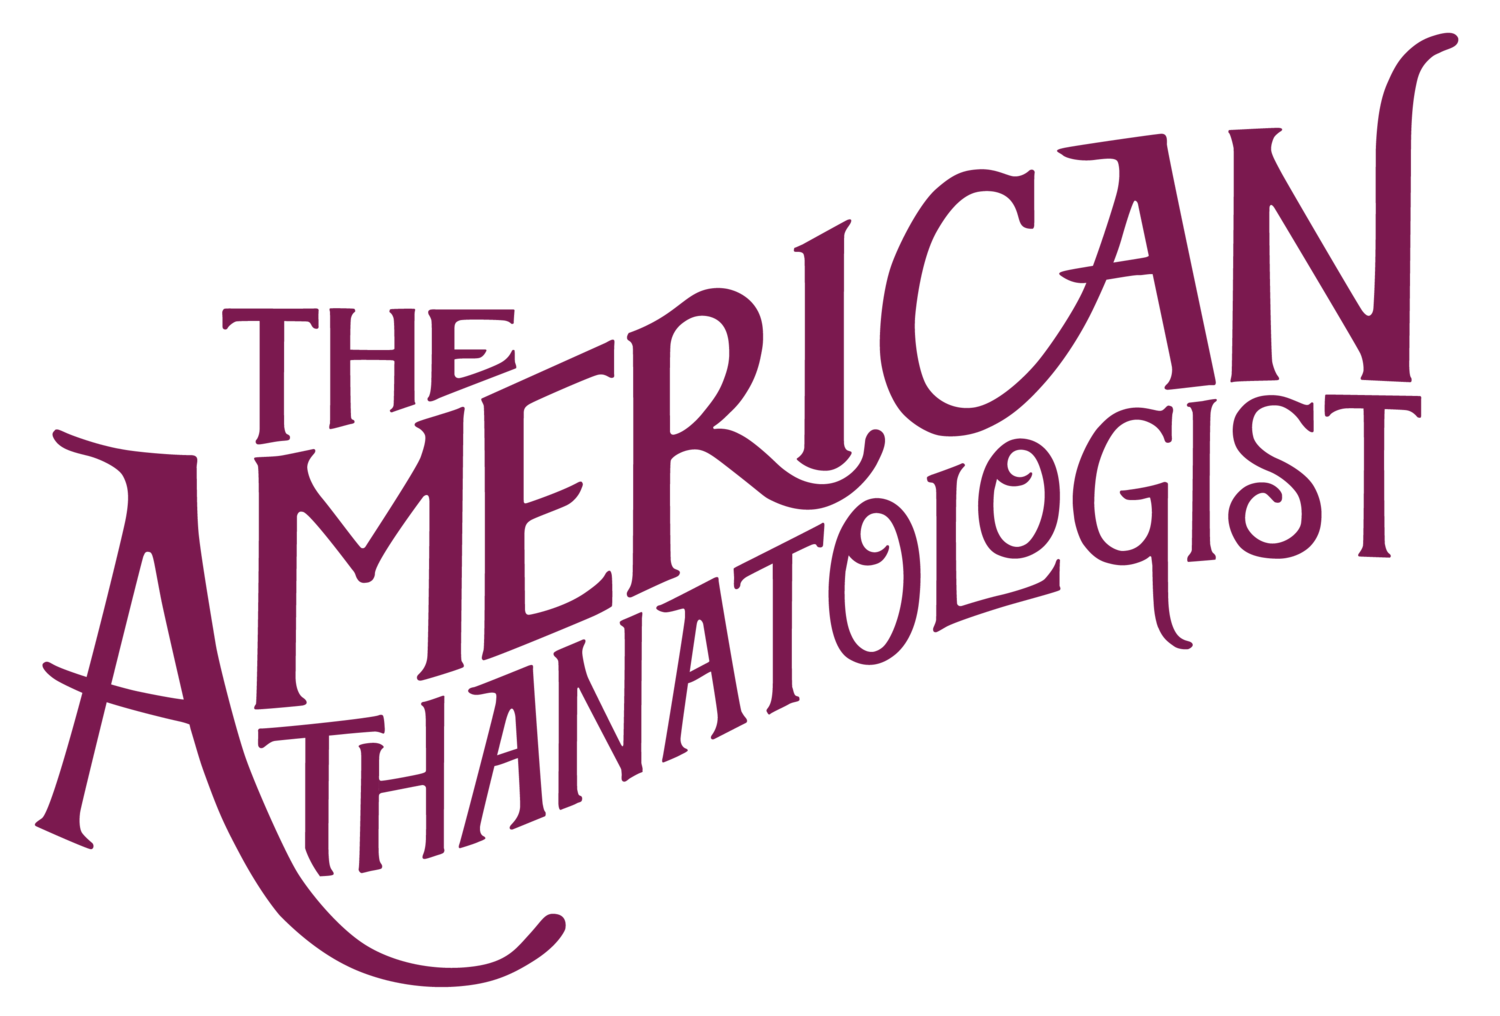 The American Thanatologist